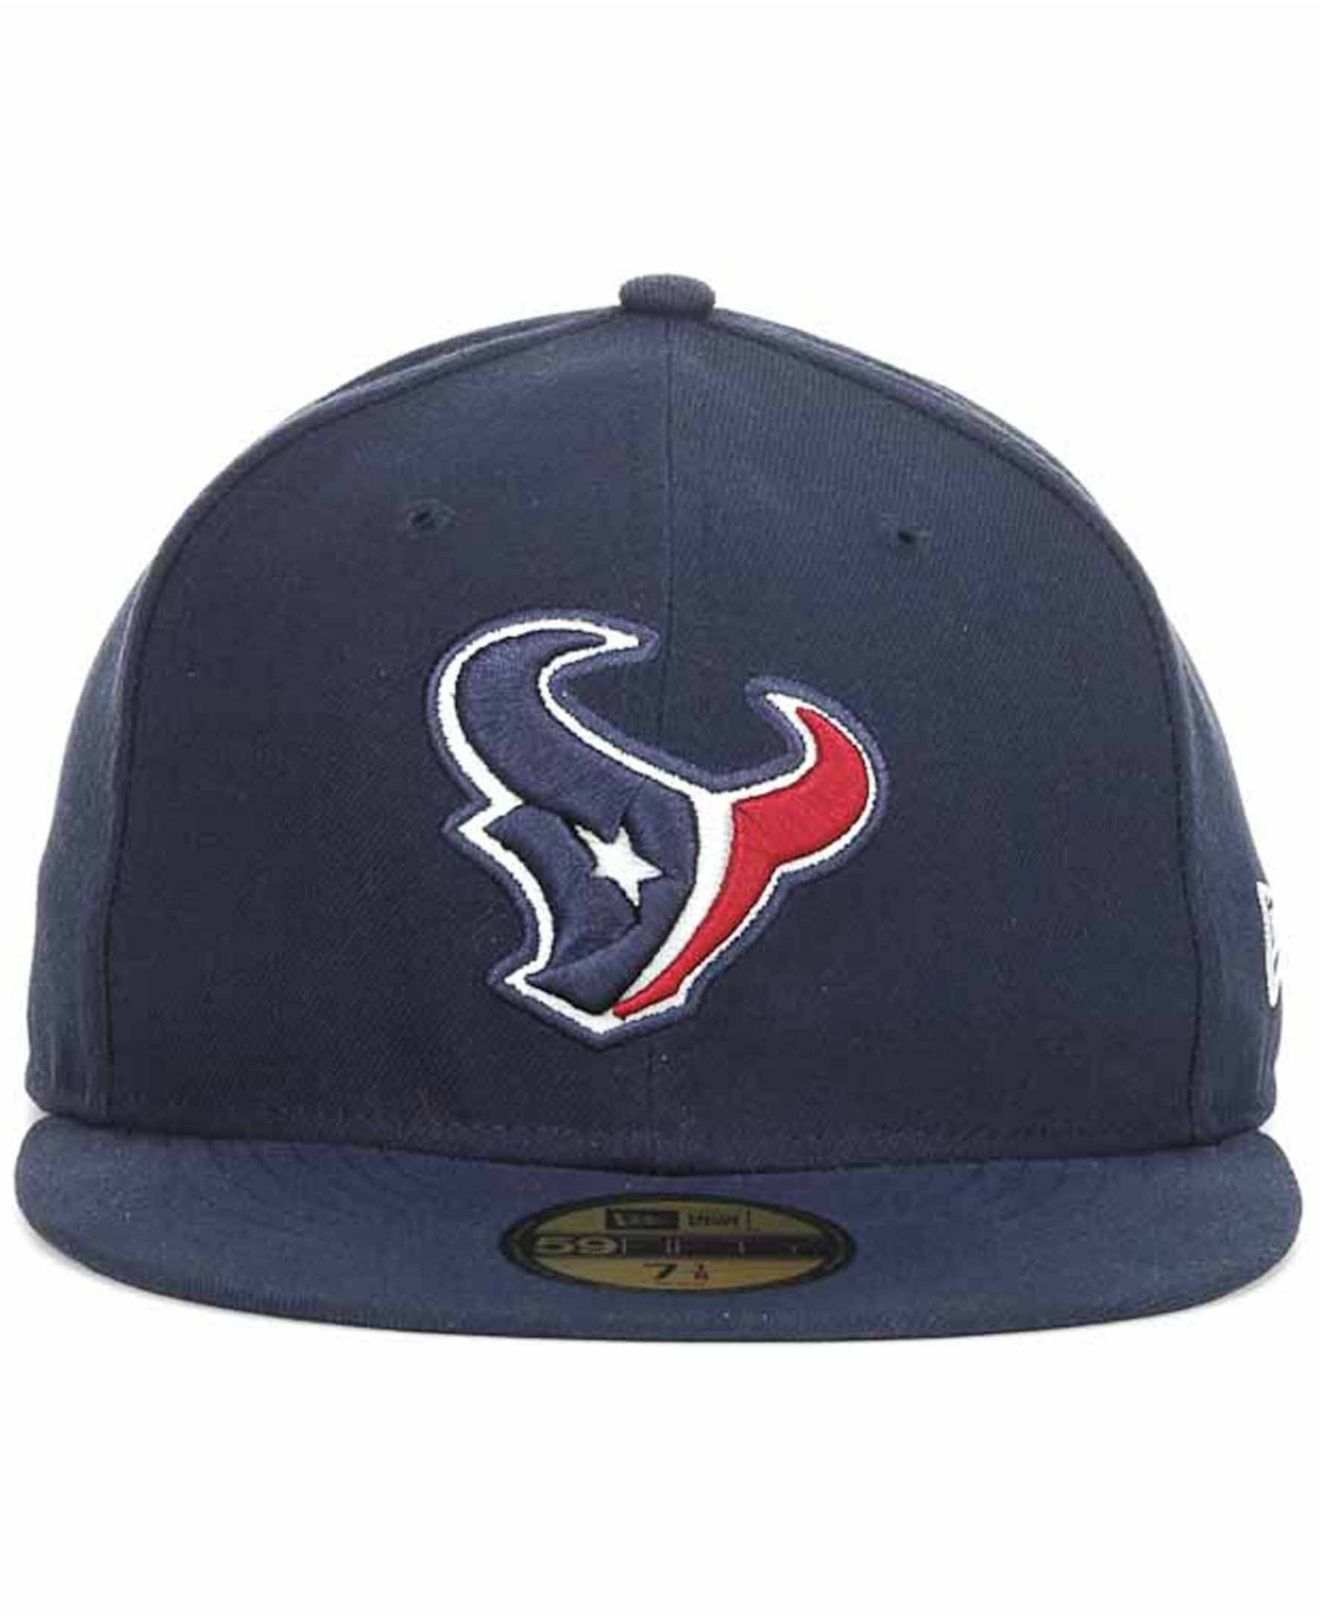 038f785d019 Lyst - Ktz Houston Texans On Field 59fifty Cap in Blue for Men